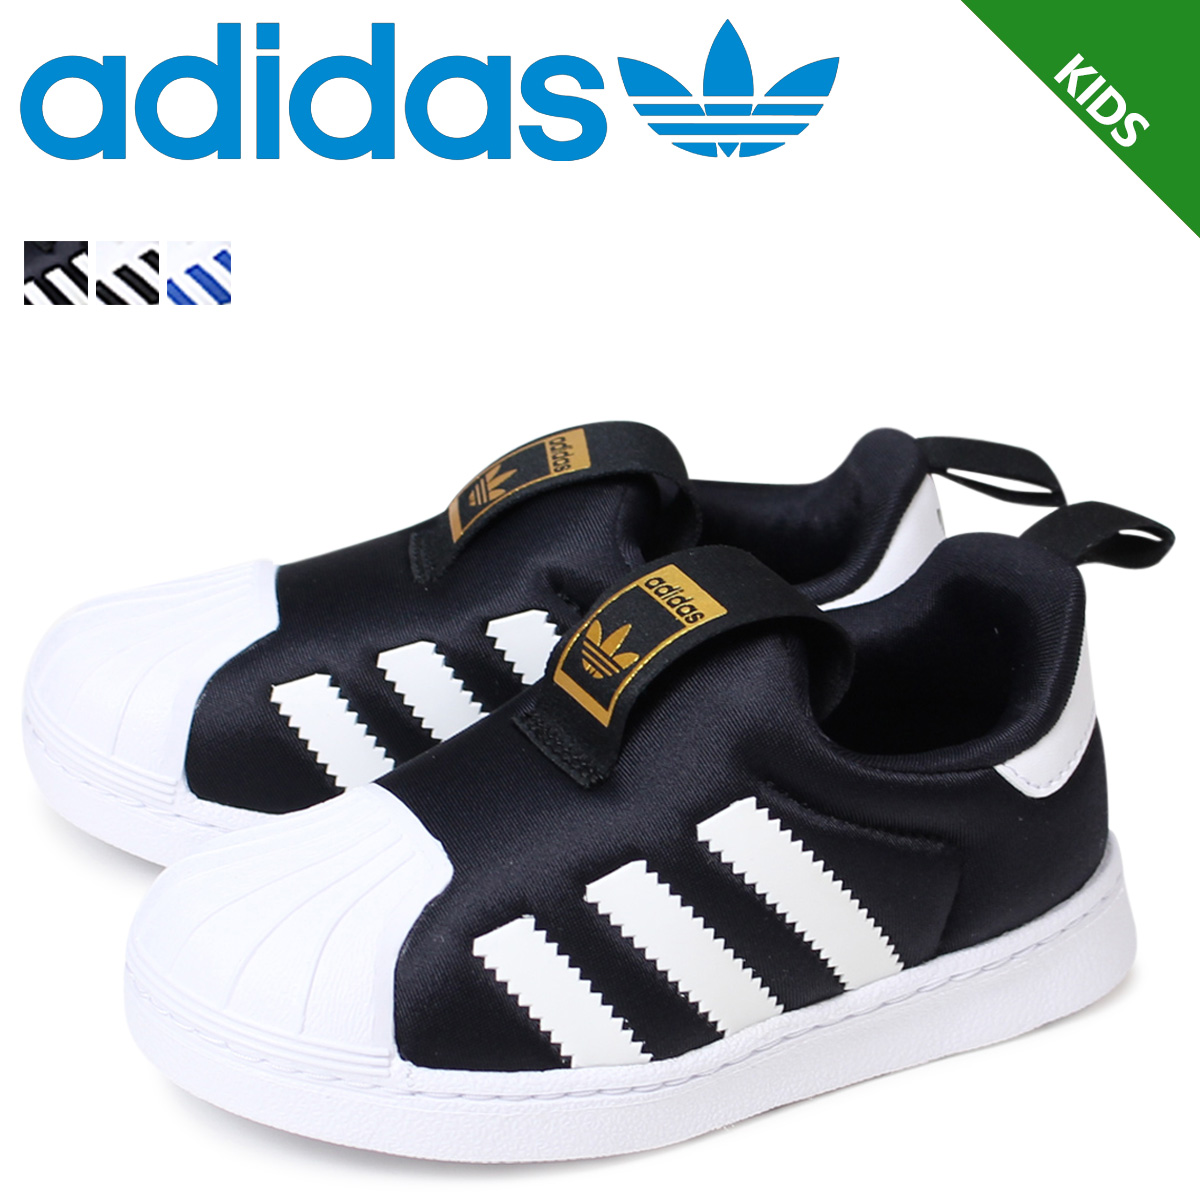 adidas superstar online shopping